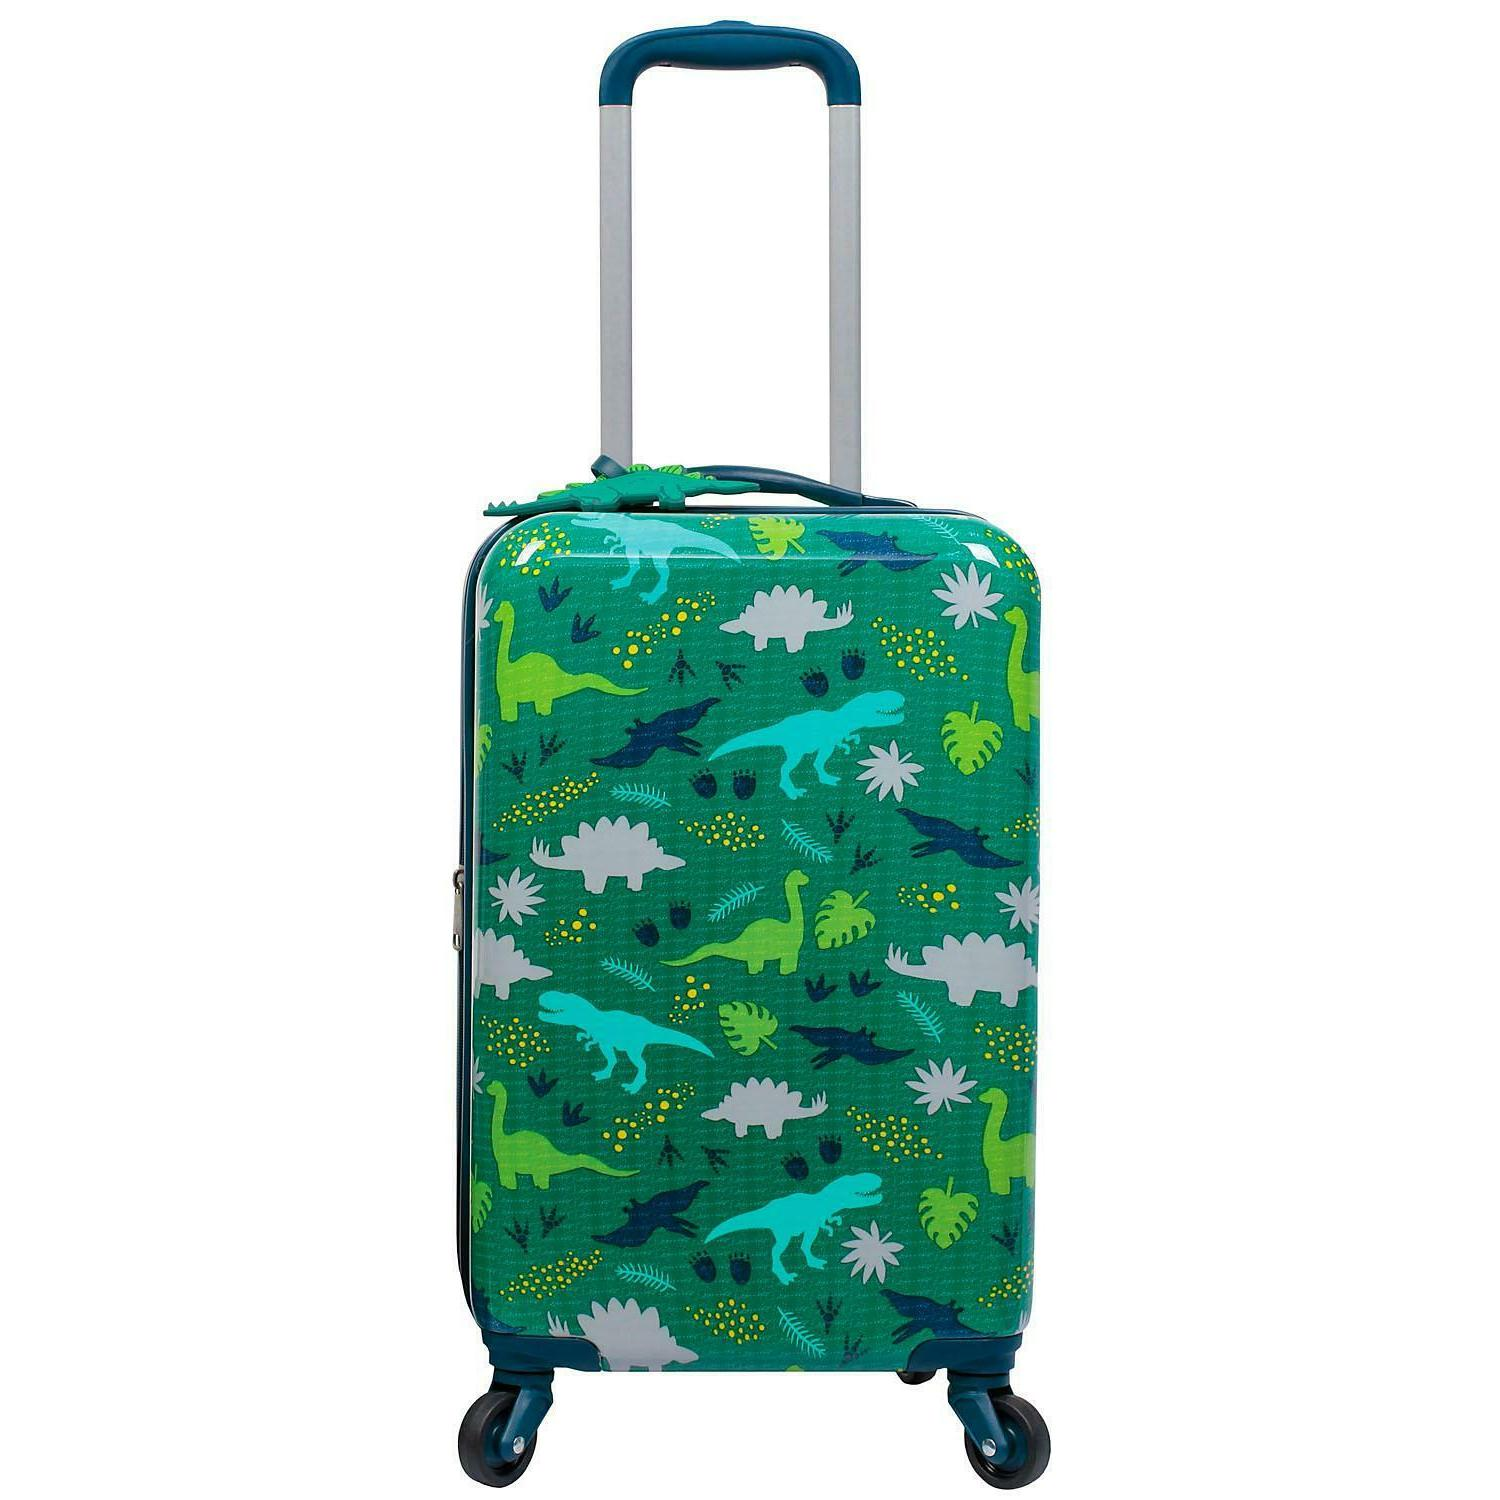 kids hardside spinner luggage with matching luggage